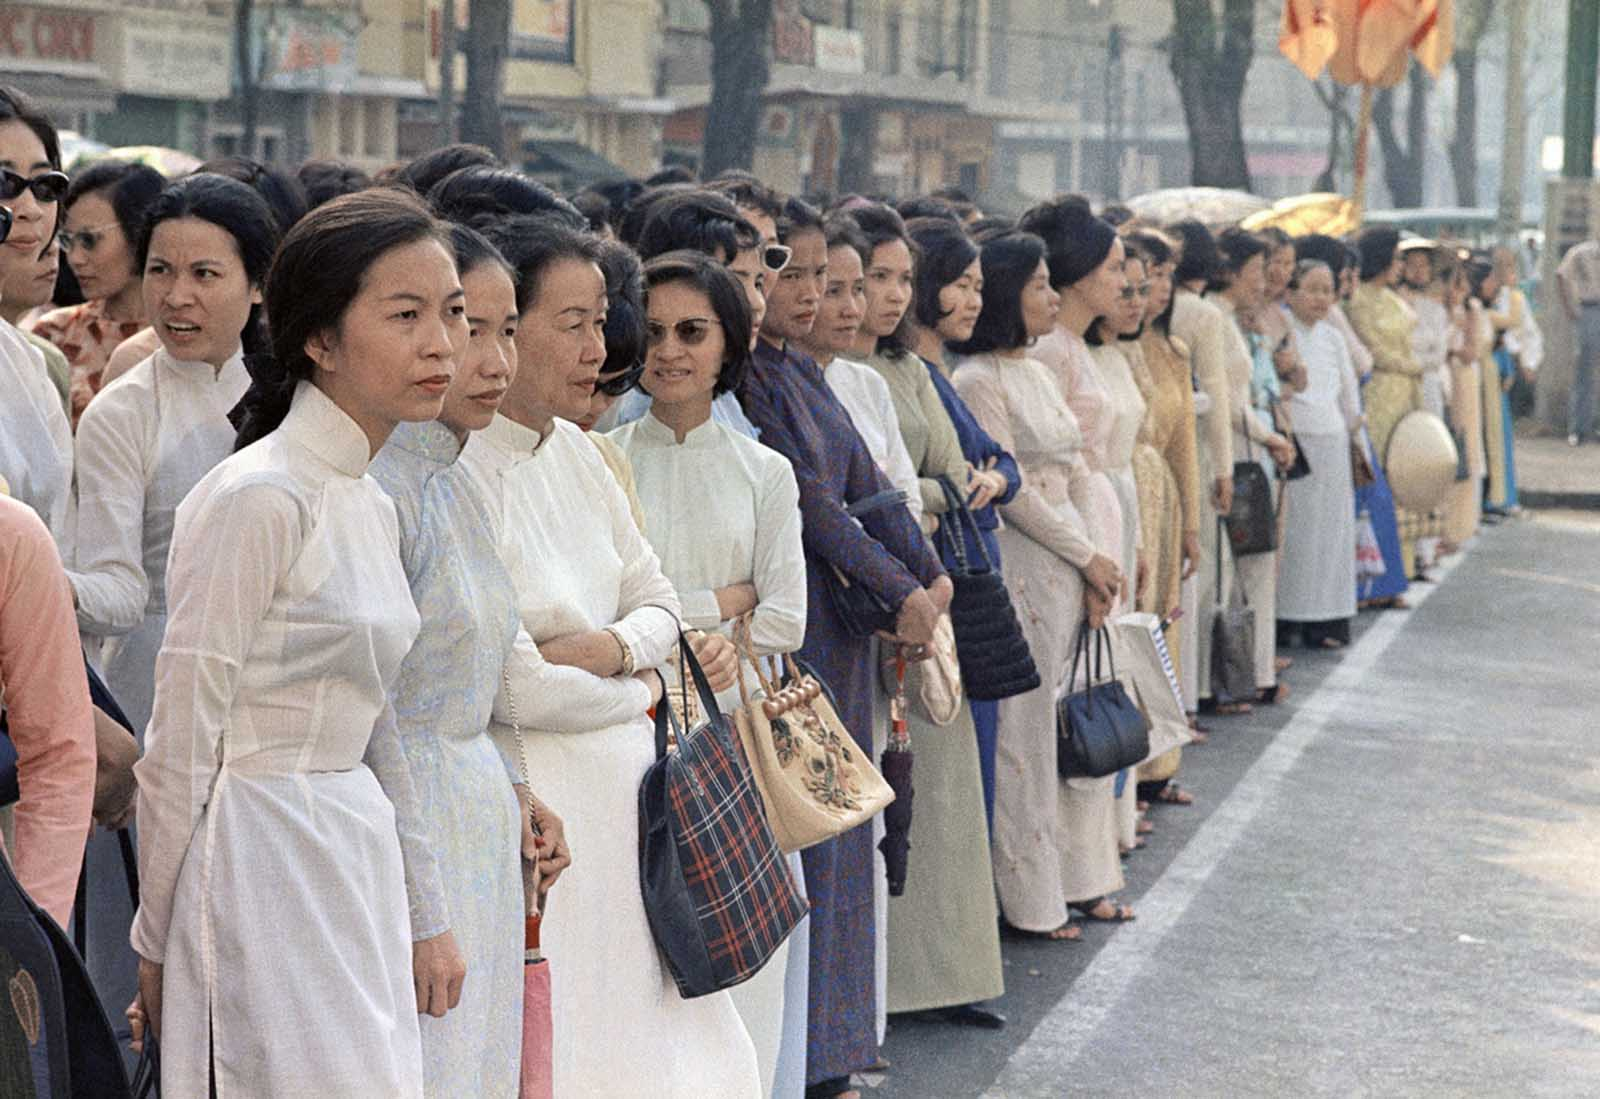 Vietnamese women on the streets of Saigon, April 1968.